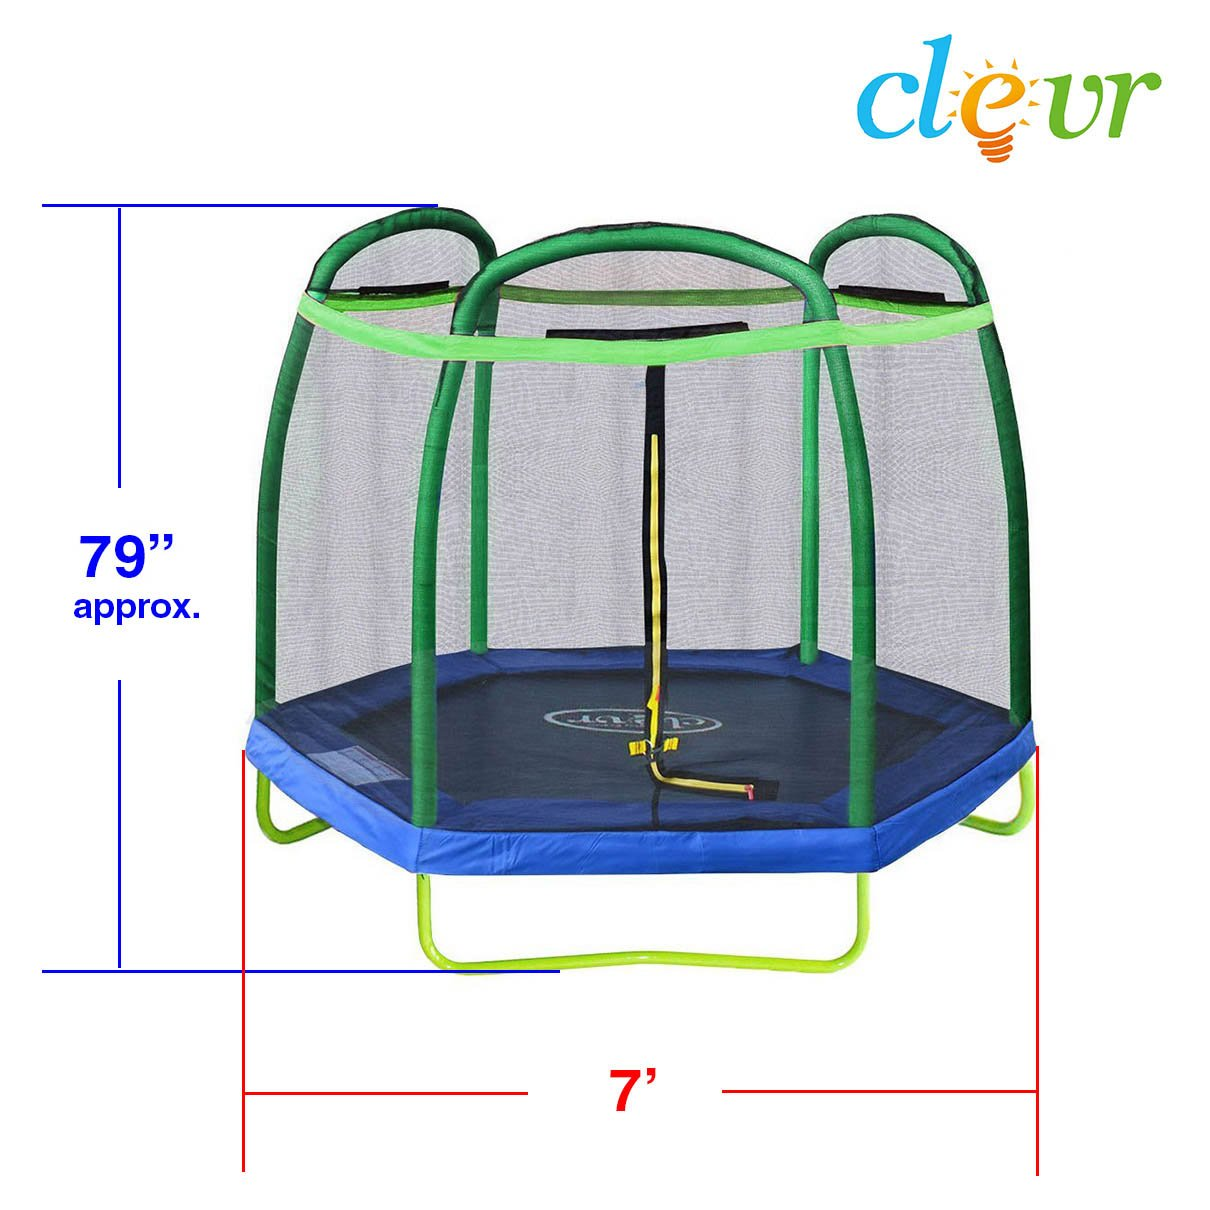 Clevr 7ft Kids Trampoline with Safety Enclosure Net & Spring Pad, 7-Foot Outdoor Round Bounce Jumper 84'' Indoor/Outdoor, Built-in Zipper Heavy Duty Frame, Green and Blue | Great Birthday Gift by Clevr (Image #3)